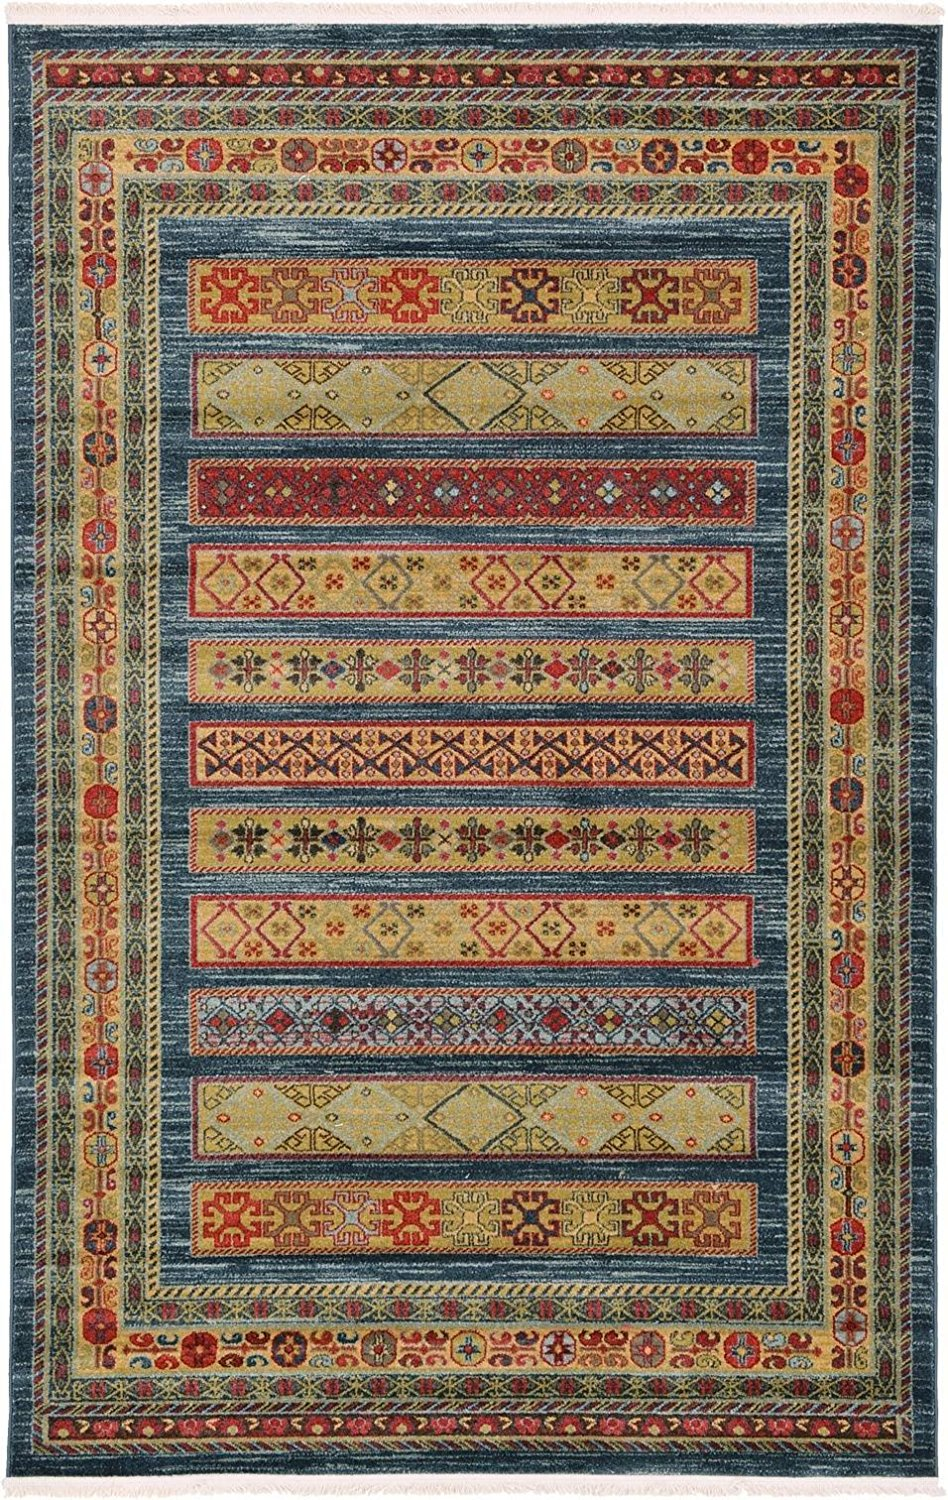 A2Z Rug 5.1-Feed-by-8-Feed Gabbeh Collection Area Rug - Blue Modern & Traditional rugs for living room - rugs for dining room & bedroom - Floor Carpet